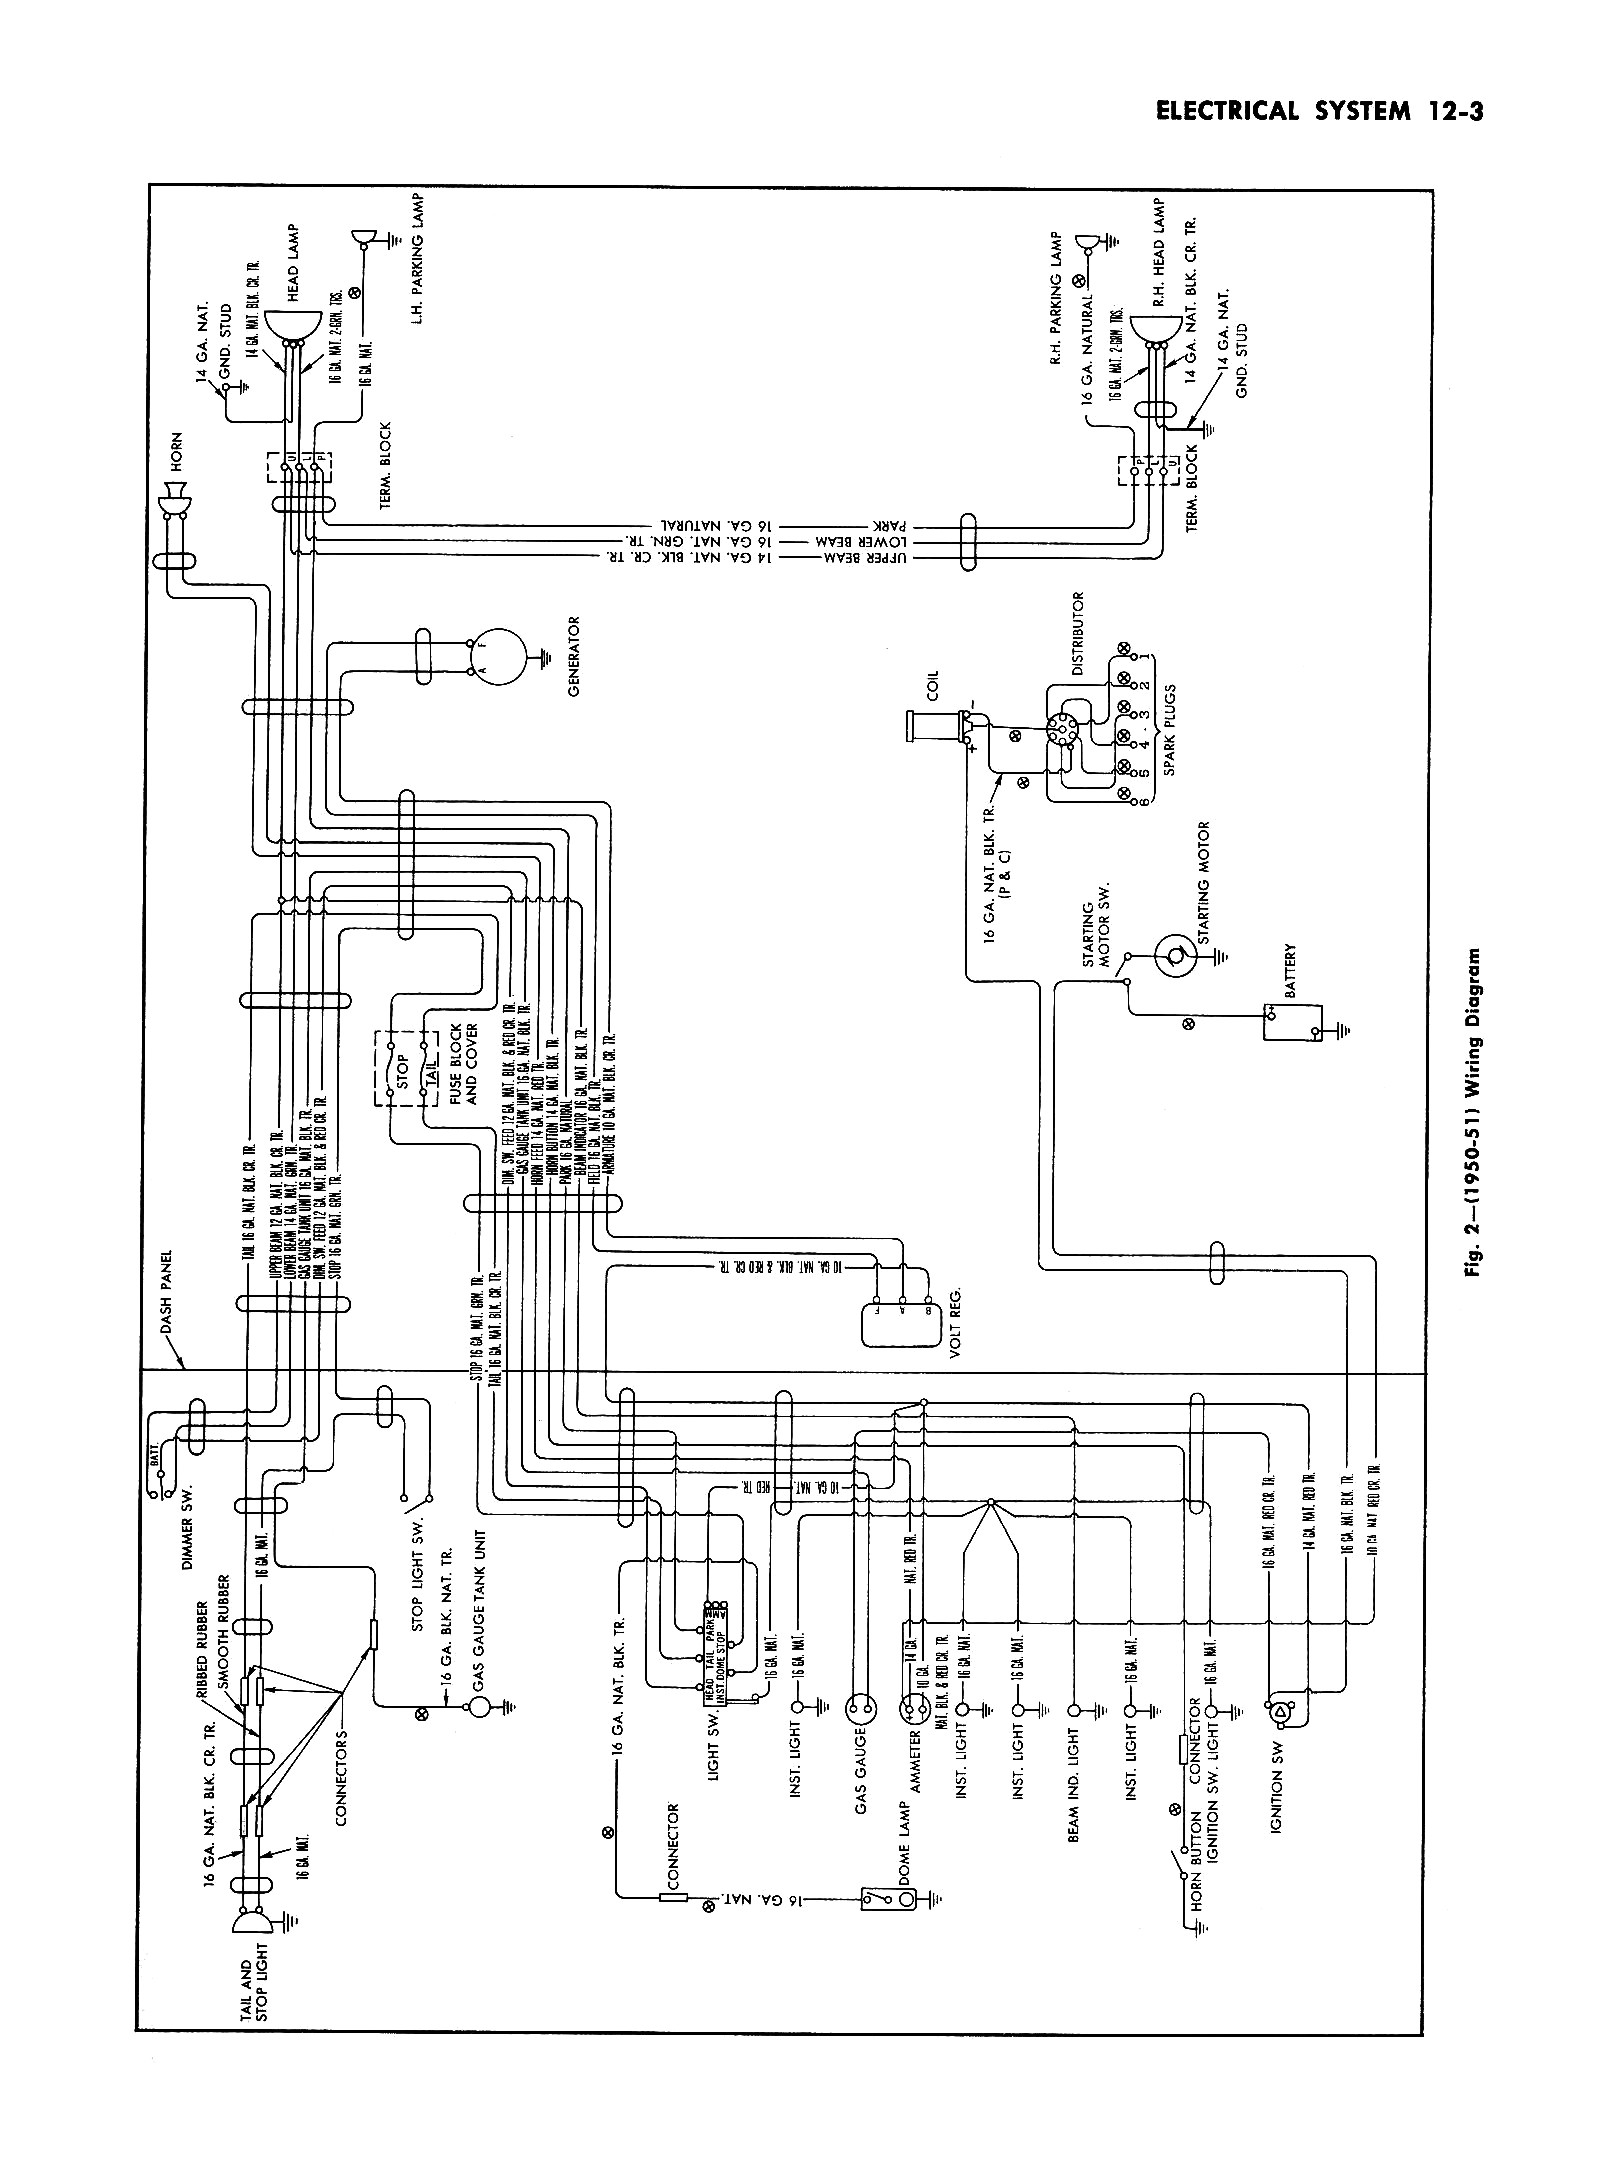 chevy wiring diagrams 1960 chevy truck wiring diagram at 1950 Chevy Truck Wiring Diagram